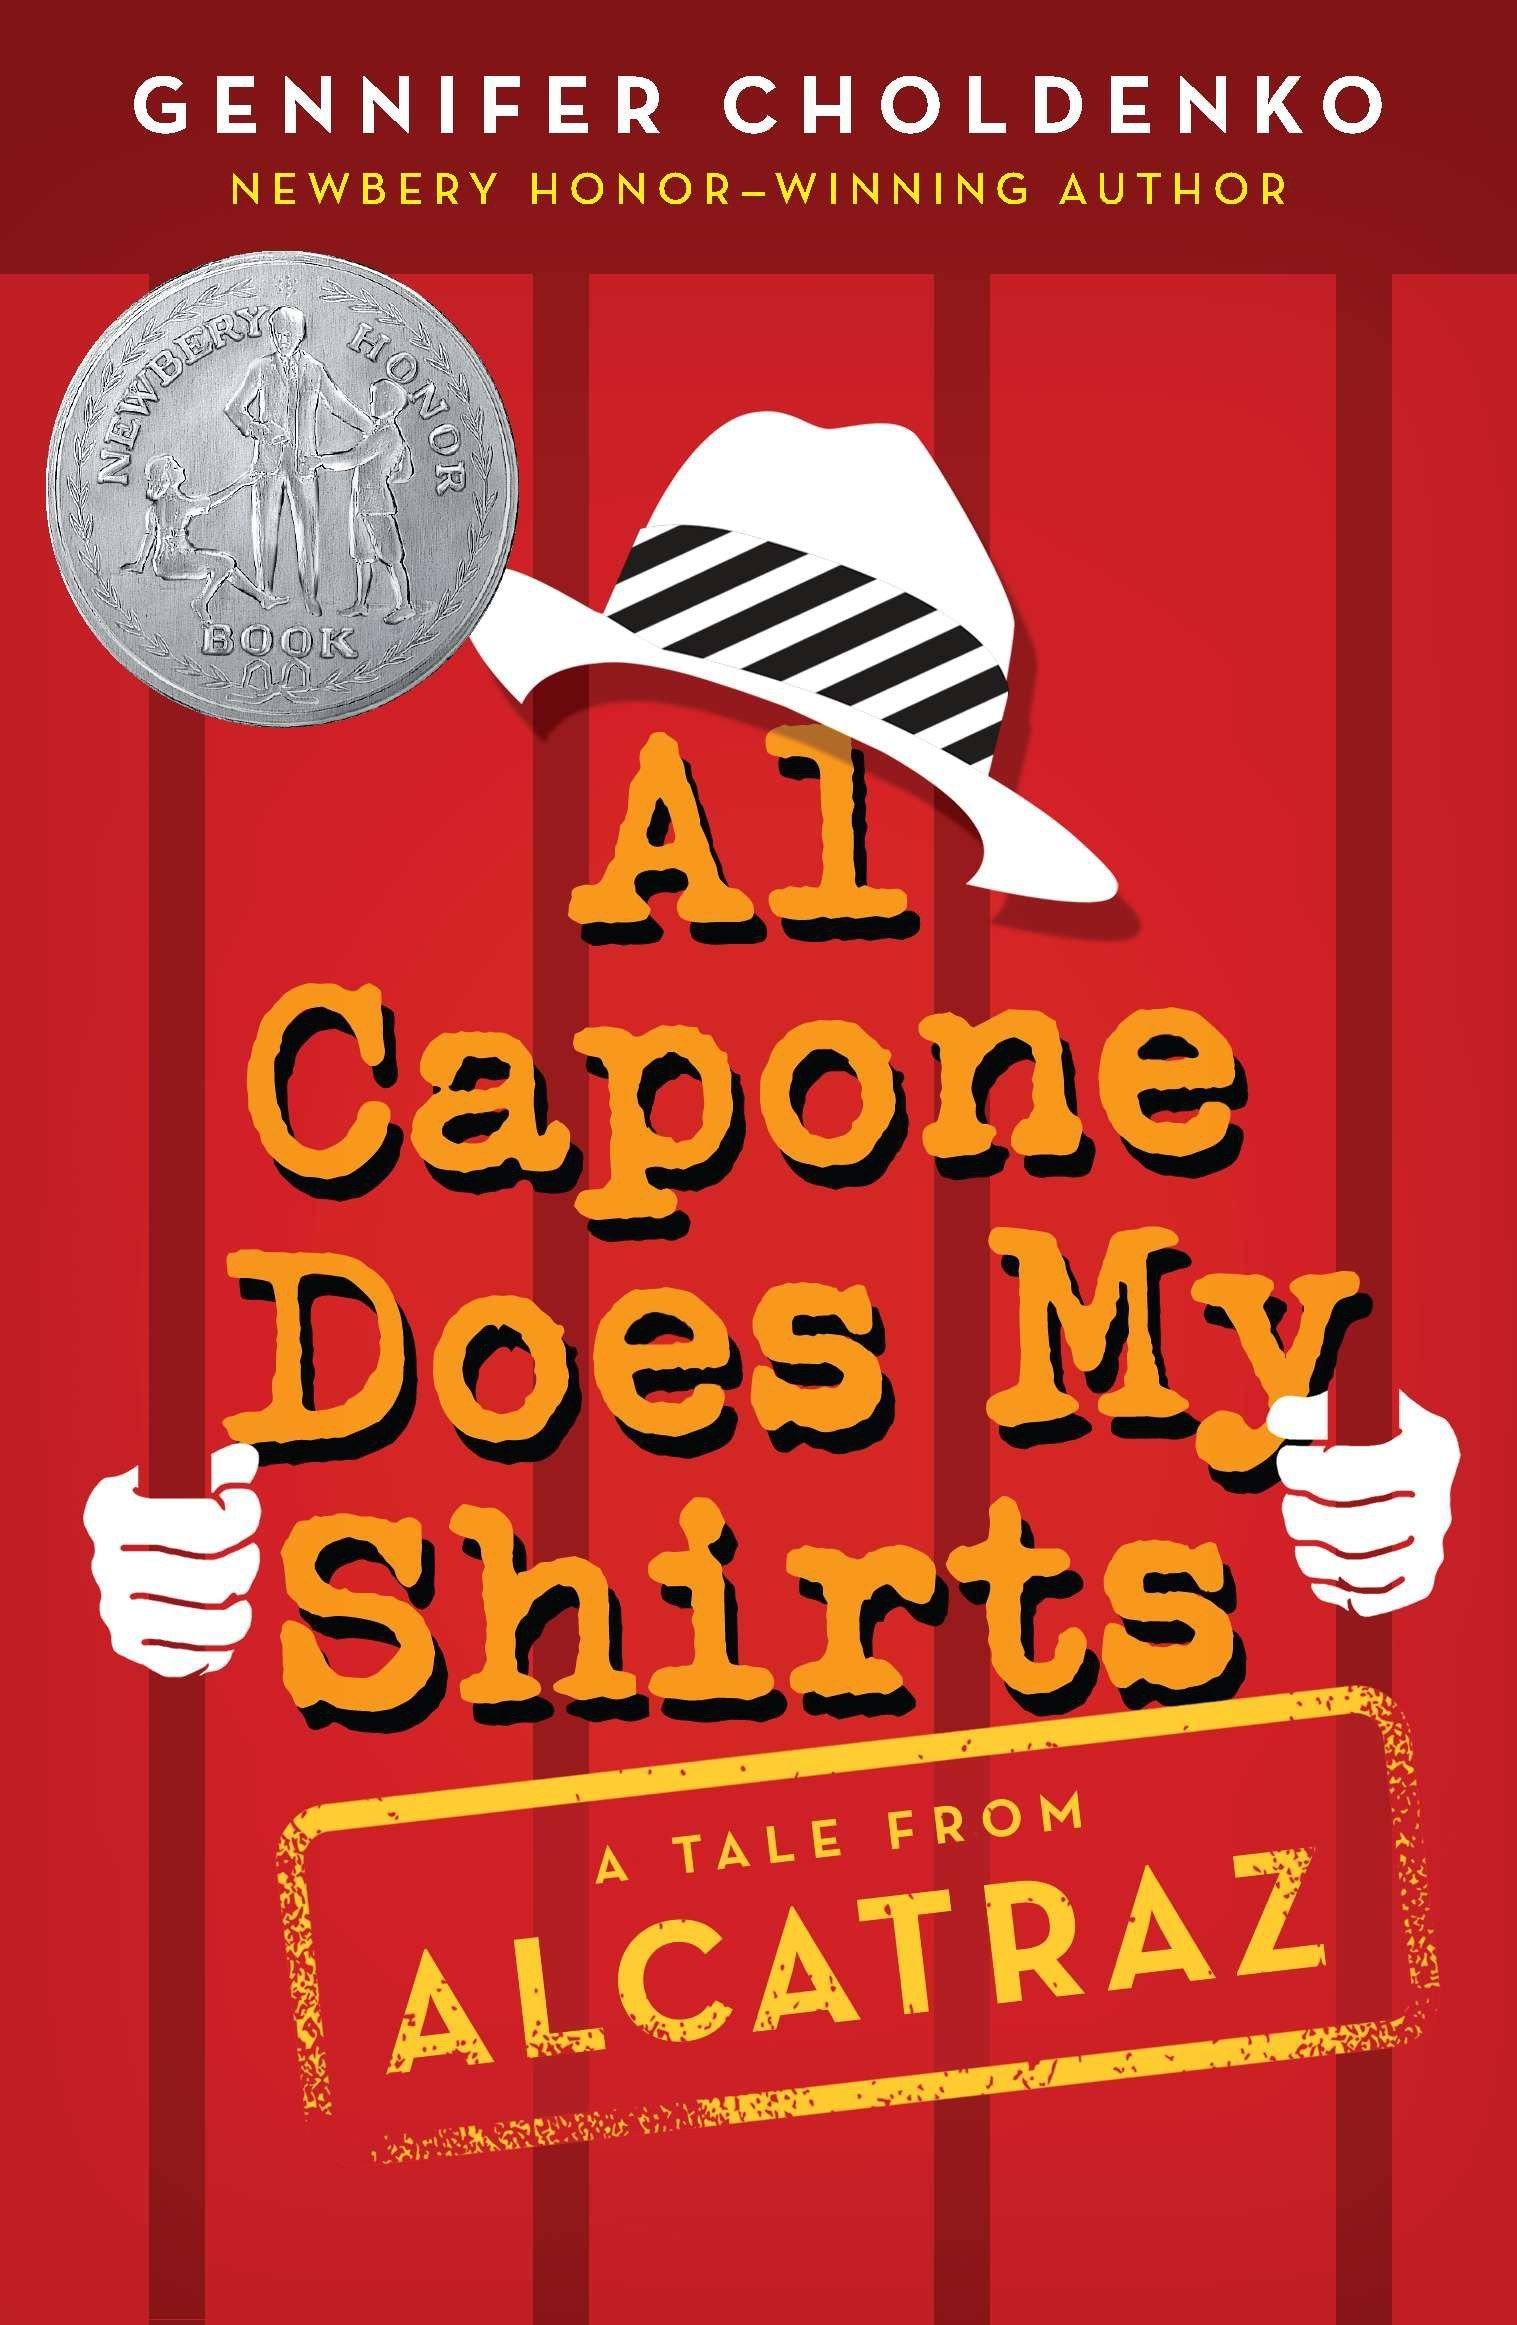 how tall was al capone